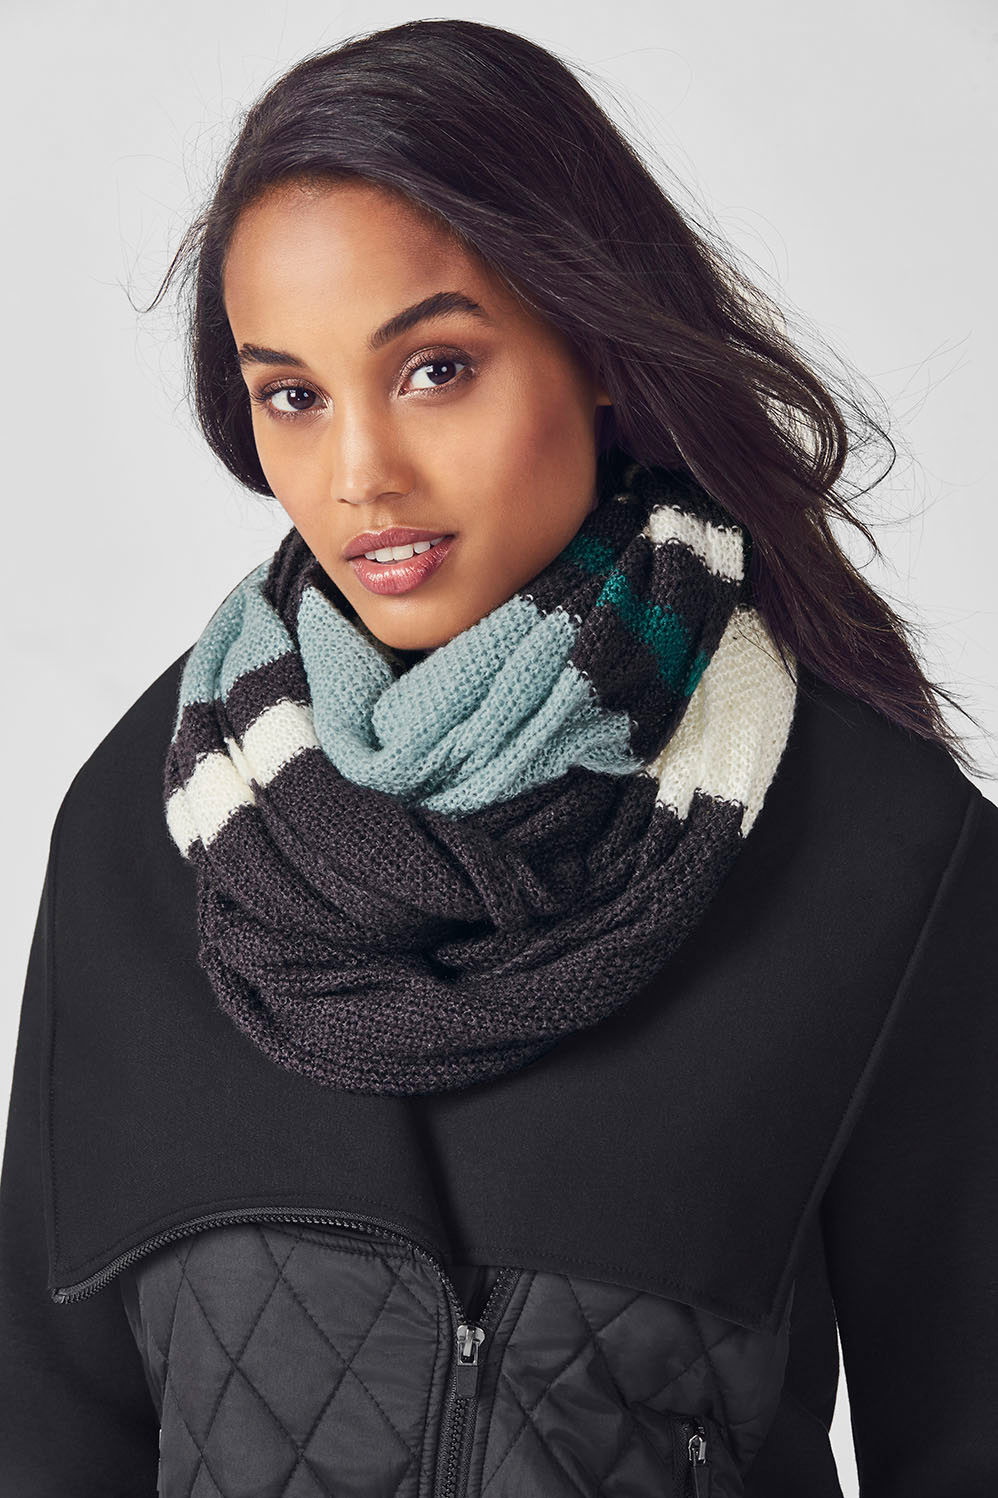 The Pearl Knit Infinity Scarf Fabletics